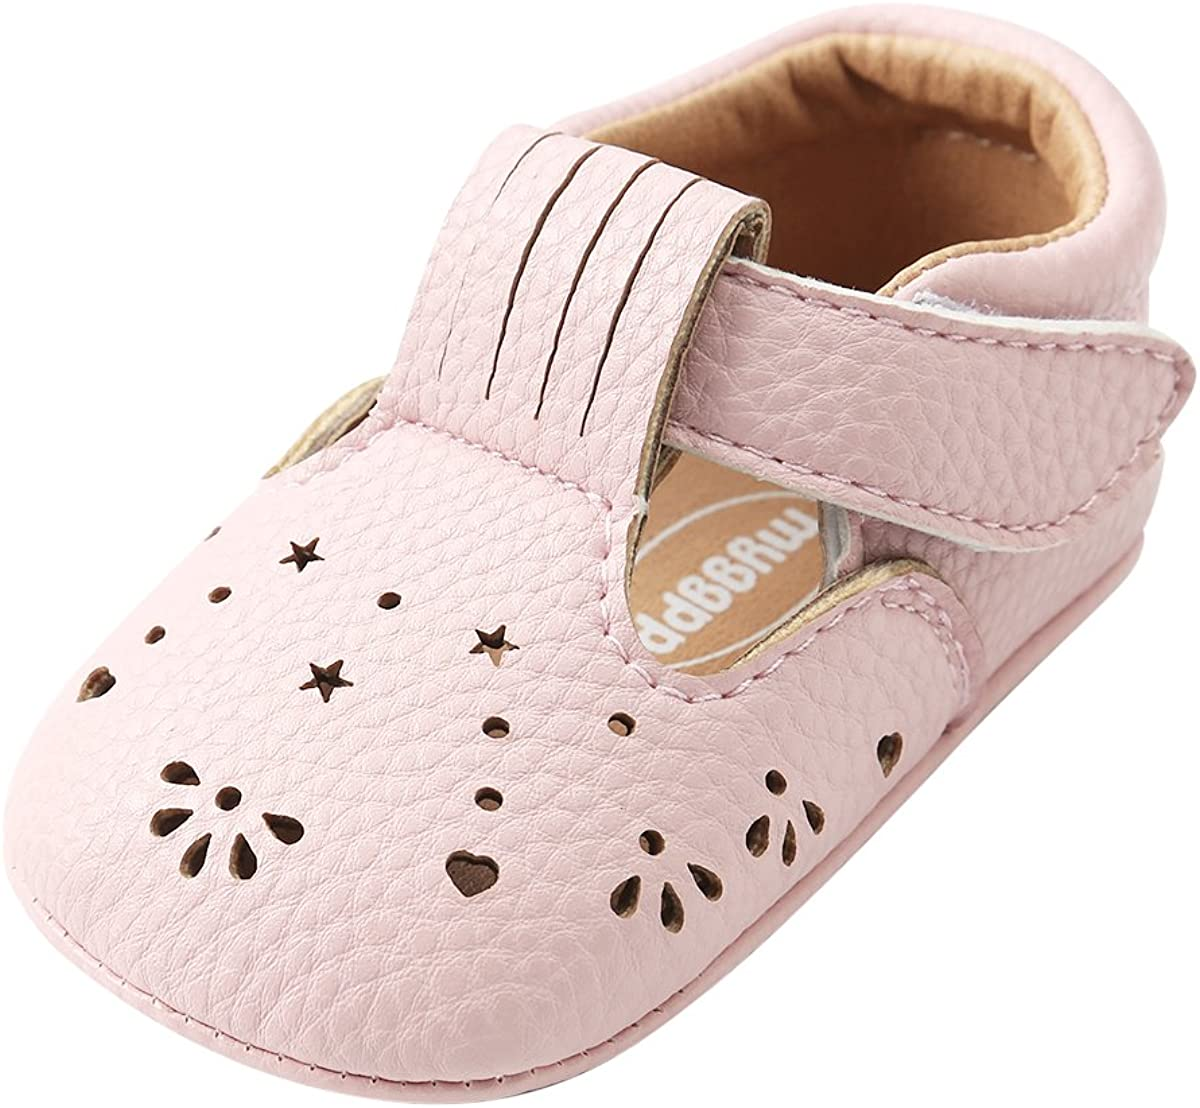 Kuner Baby Girls Pu Leather Embroidered Soft Bottom Non-Slip Princess Shoes First Walkers Shoes